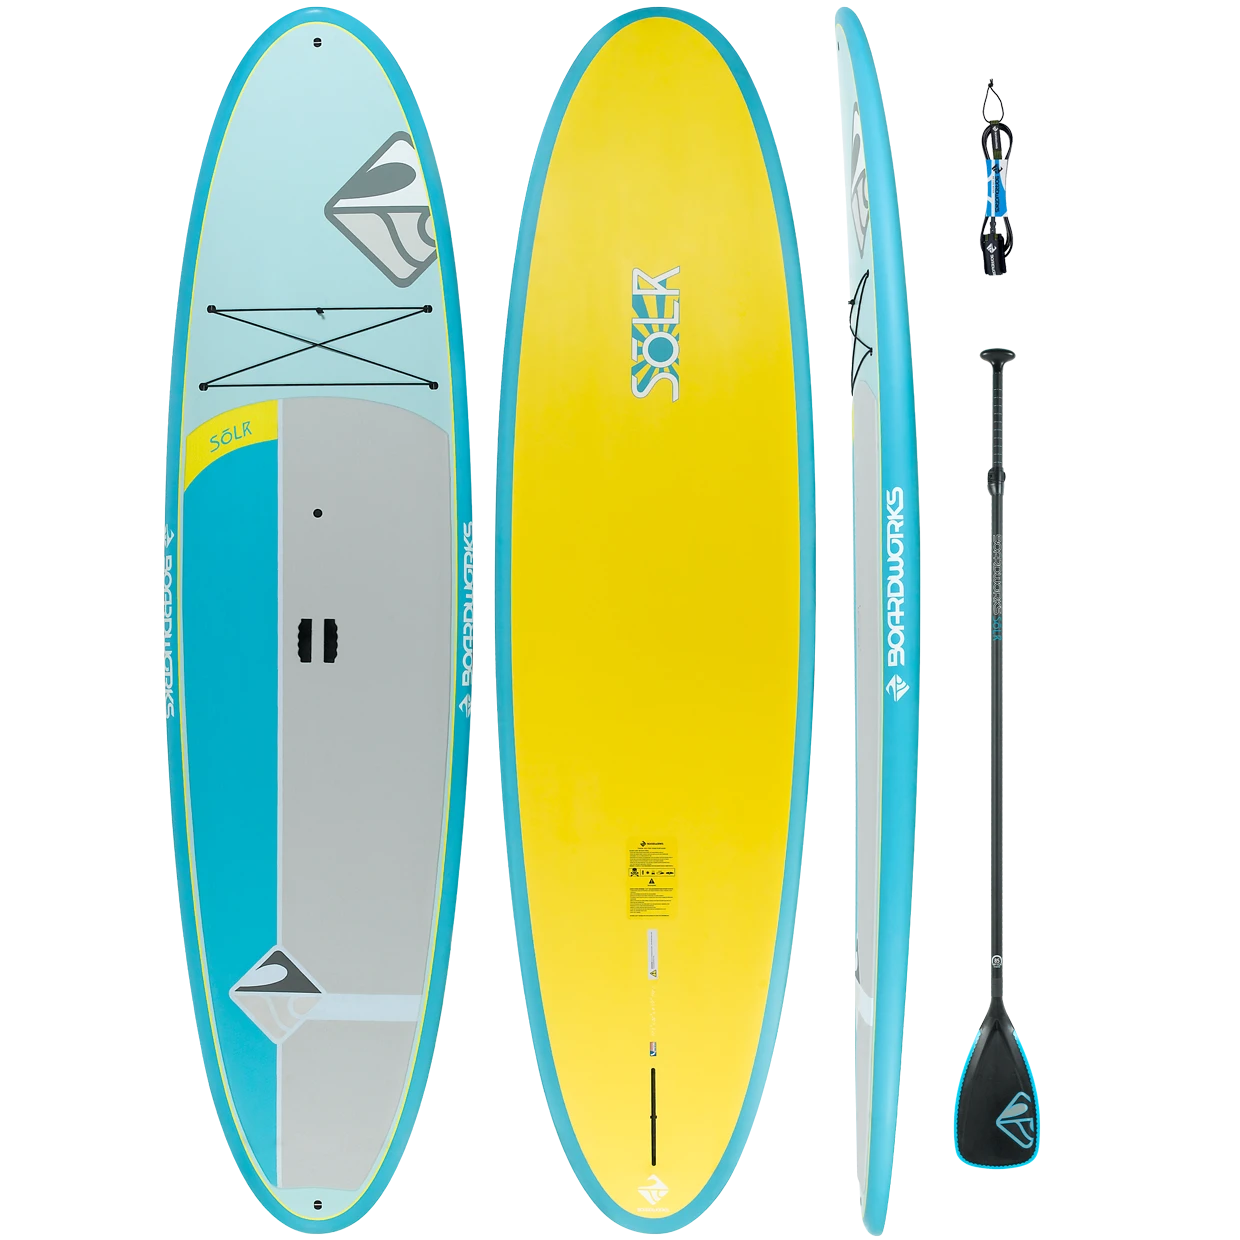 Boardworks - Solr 10'6 - All-around SUP with Paddle & Leash (Aqua/Yellow)